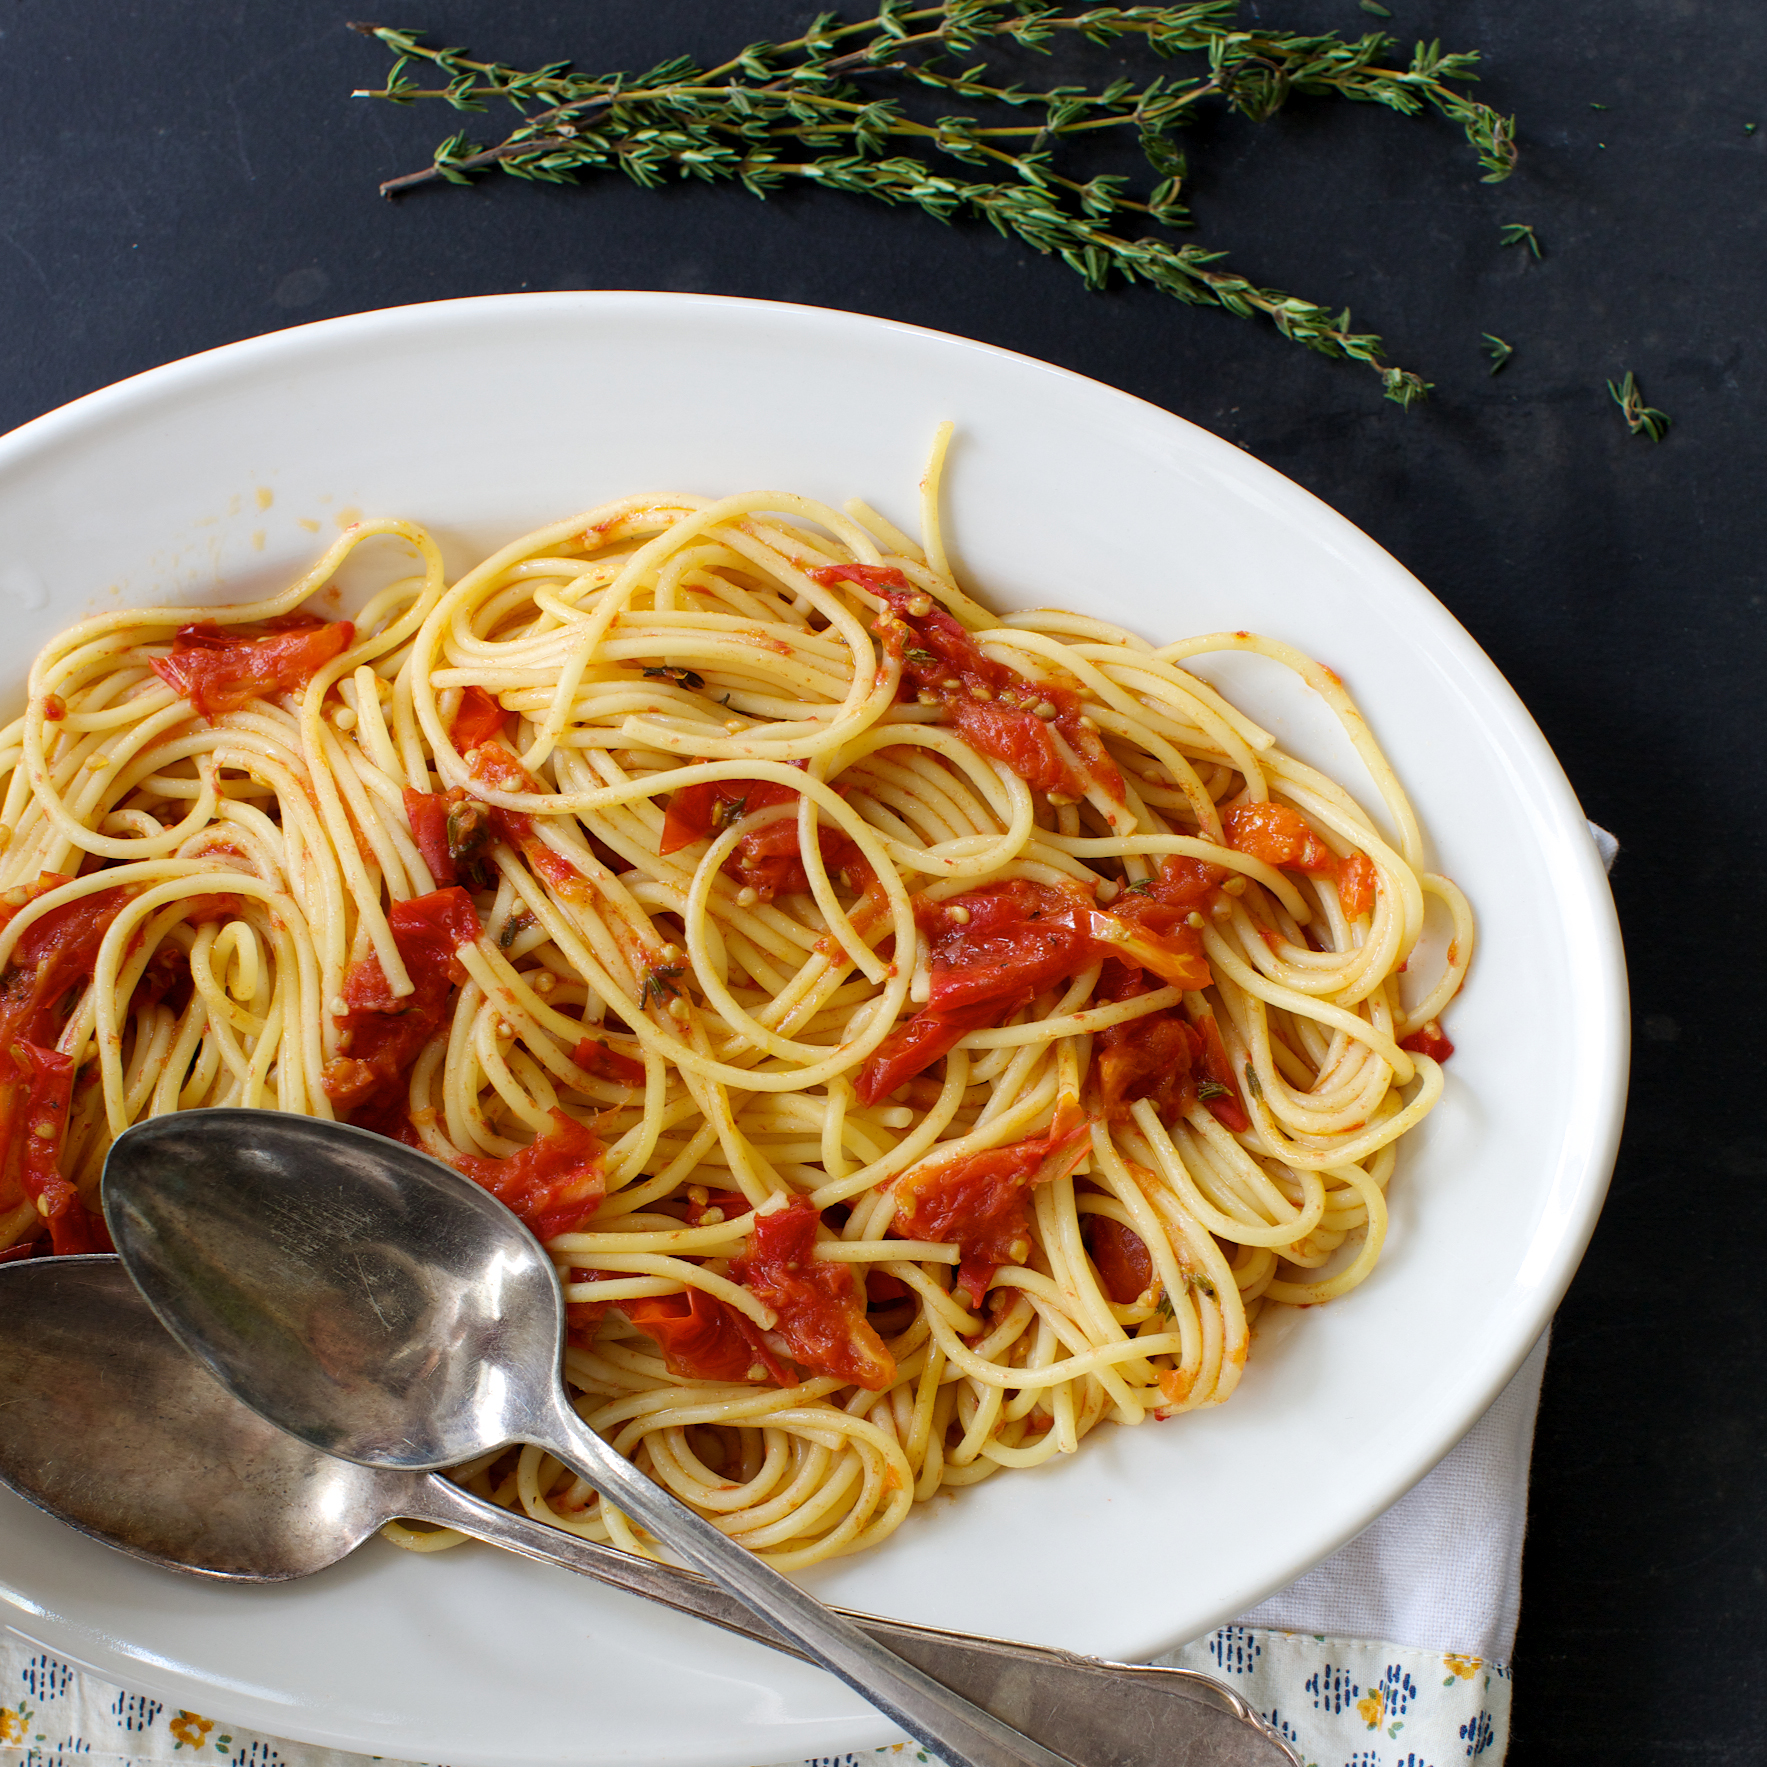 Spaghetti with Quick-Roasted Tomato Sauce with Balsamic Vinegar